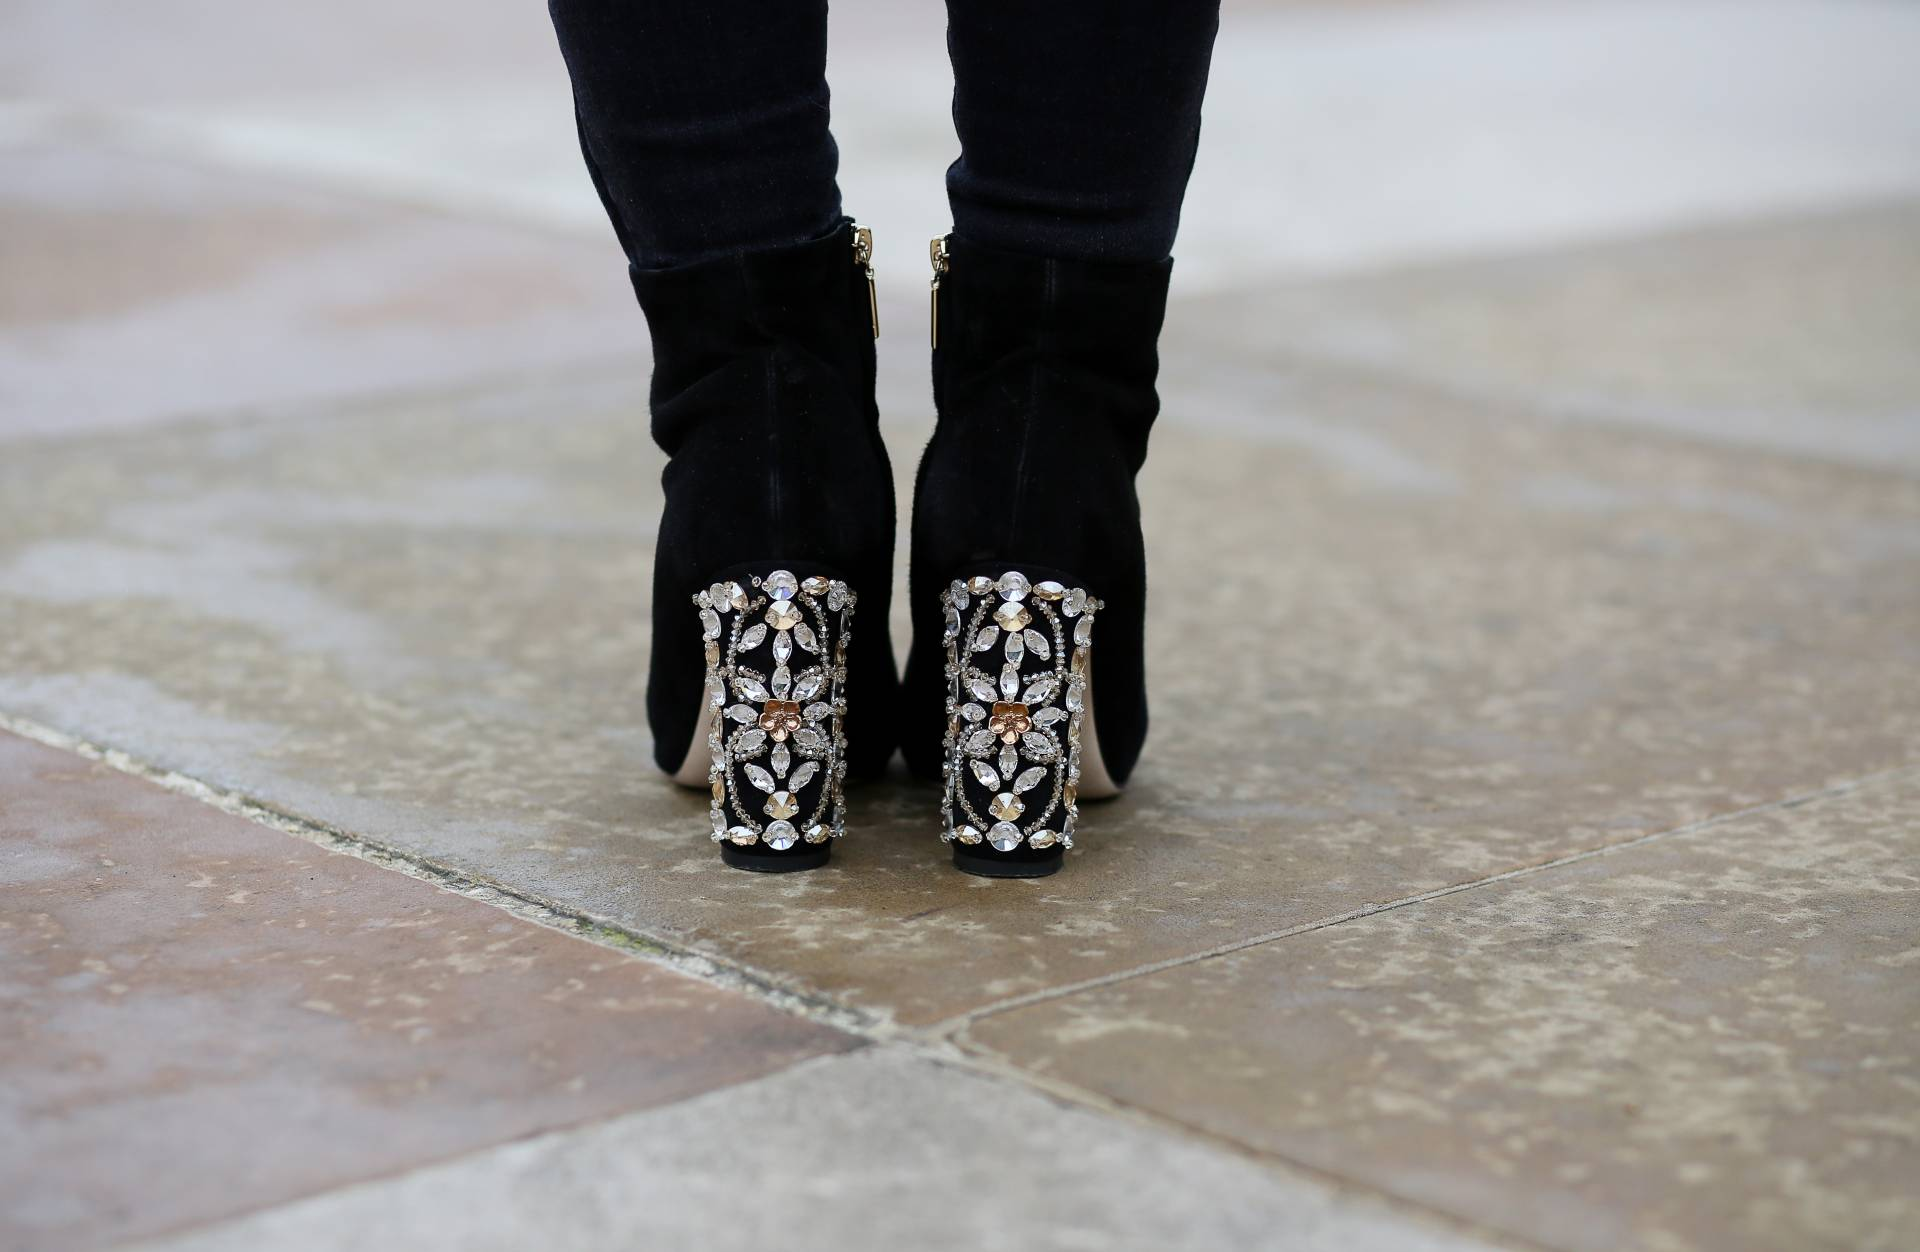 dolce and gabbana boots